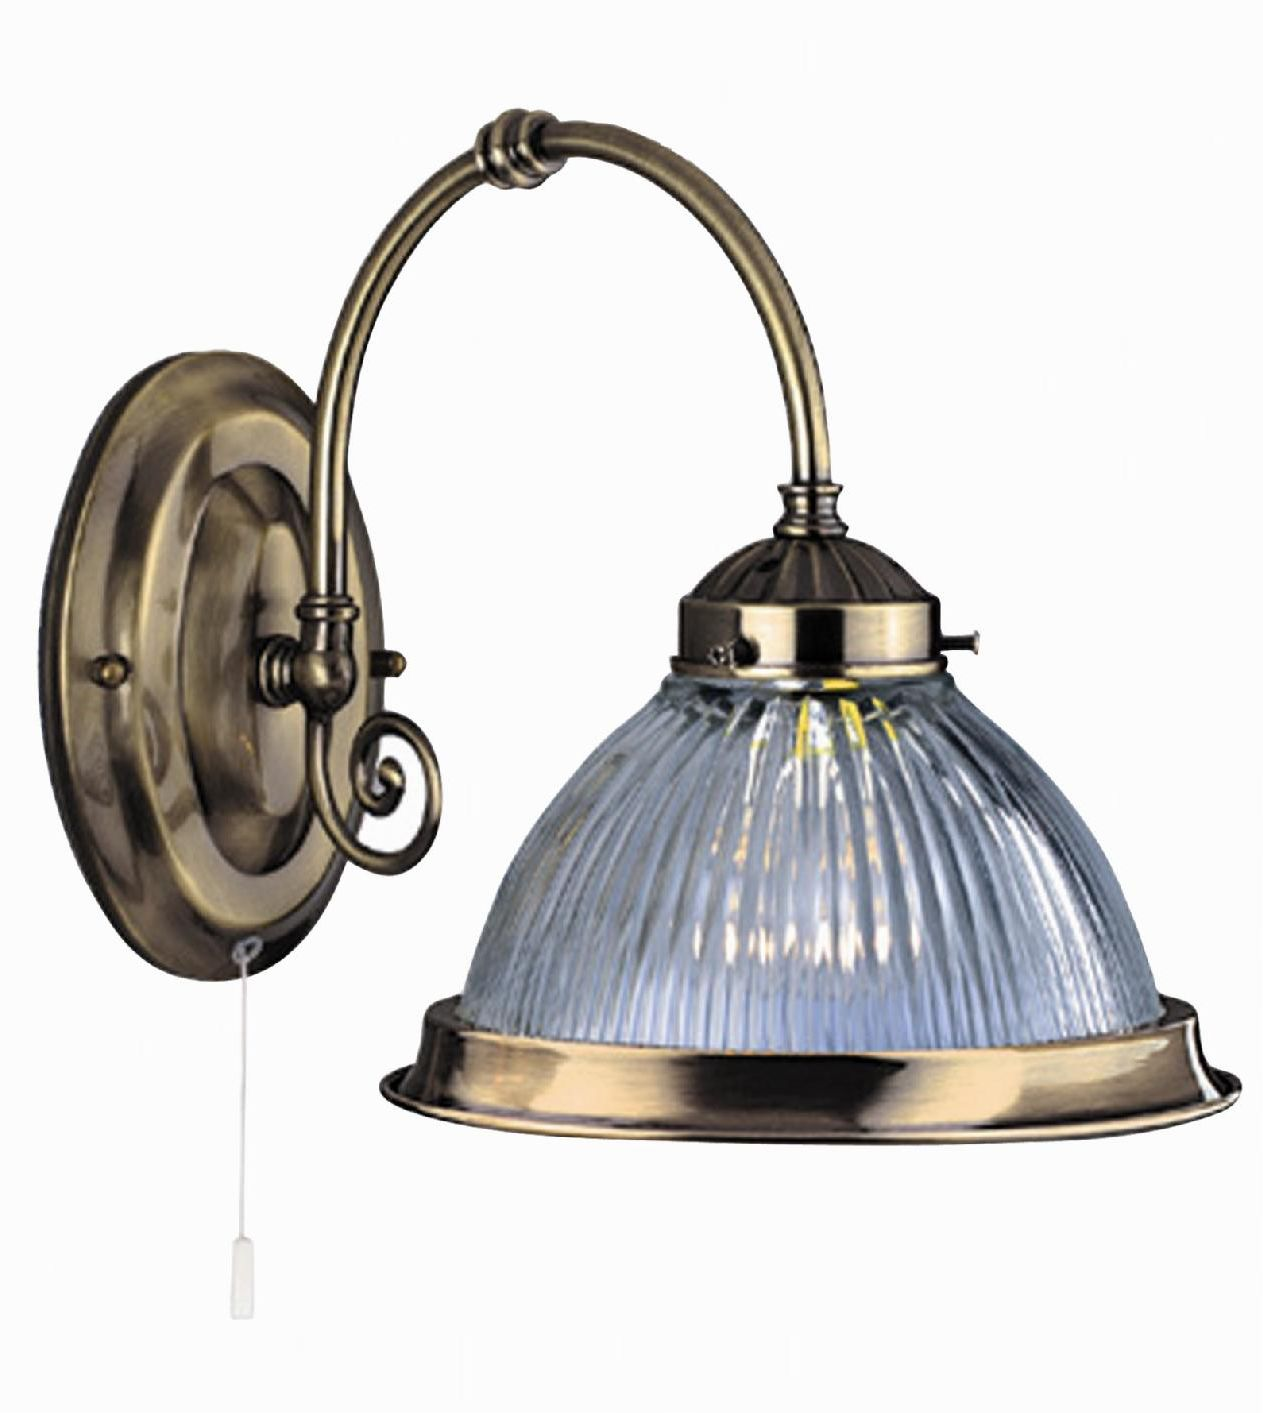 Kitchen Diner Wall Lights : House of Fraser American Diner wall light - review, compare prices, buy online